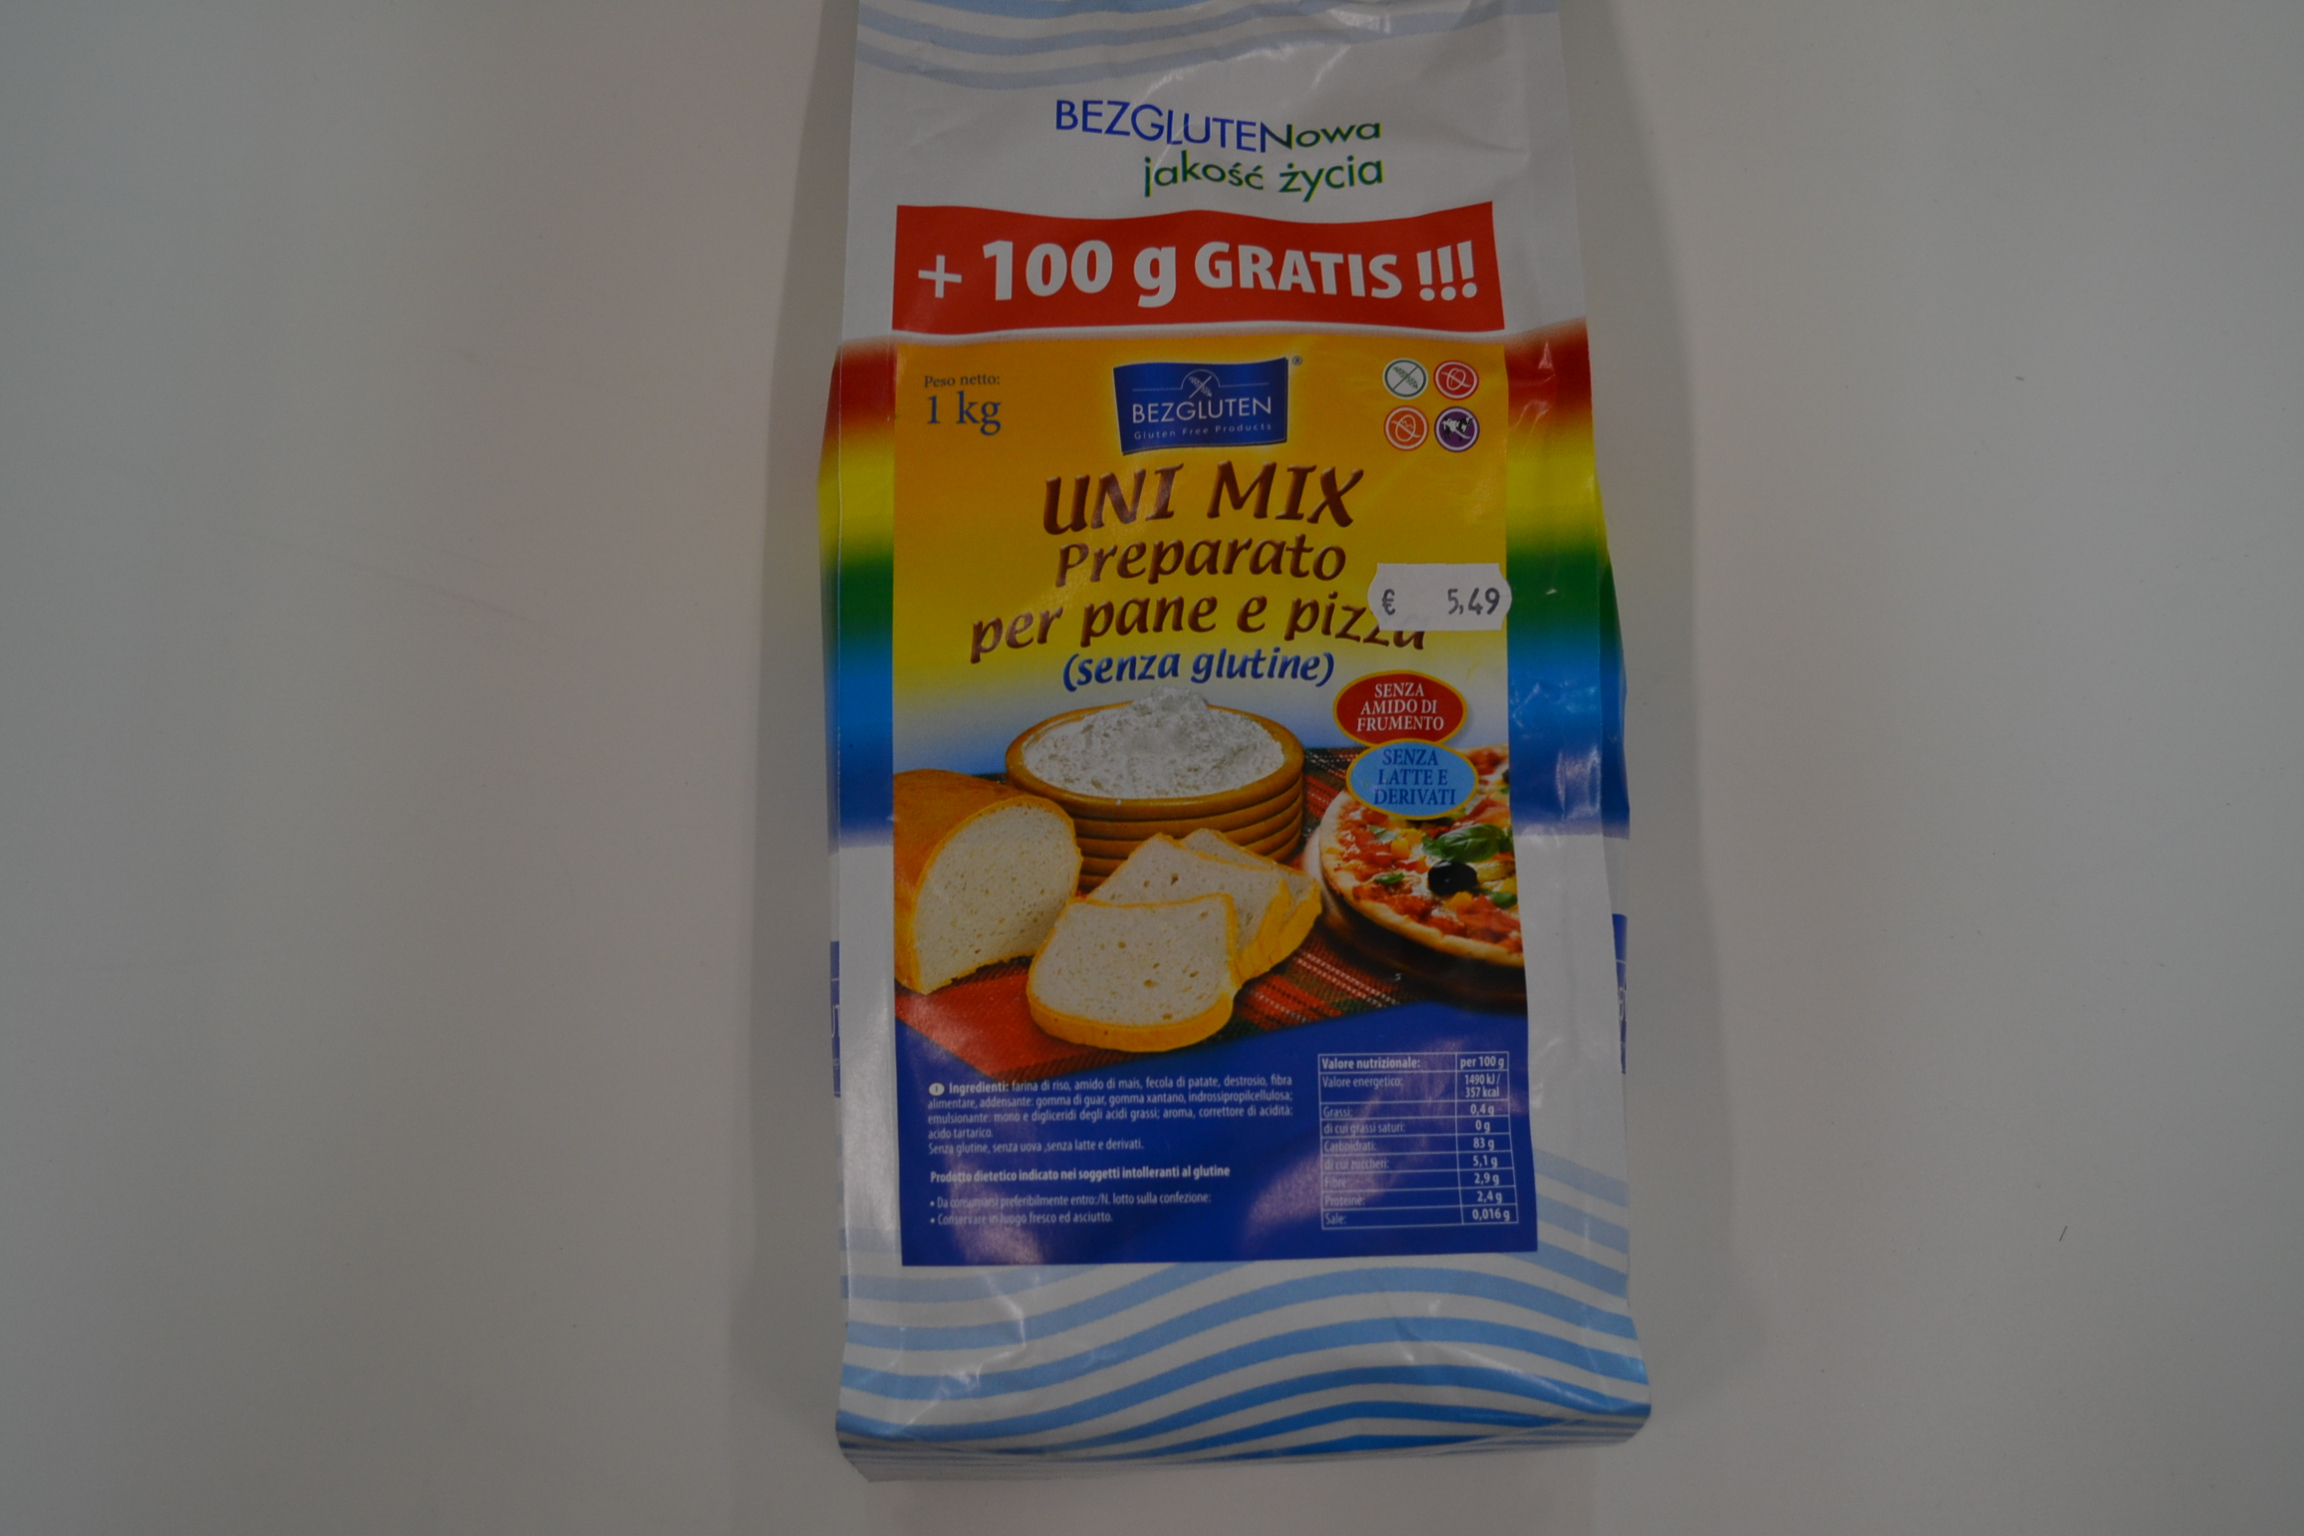 Uni mix preparato per pane e pizza BEZGLUTEN € 5,49